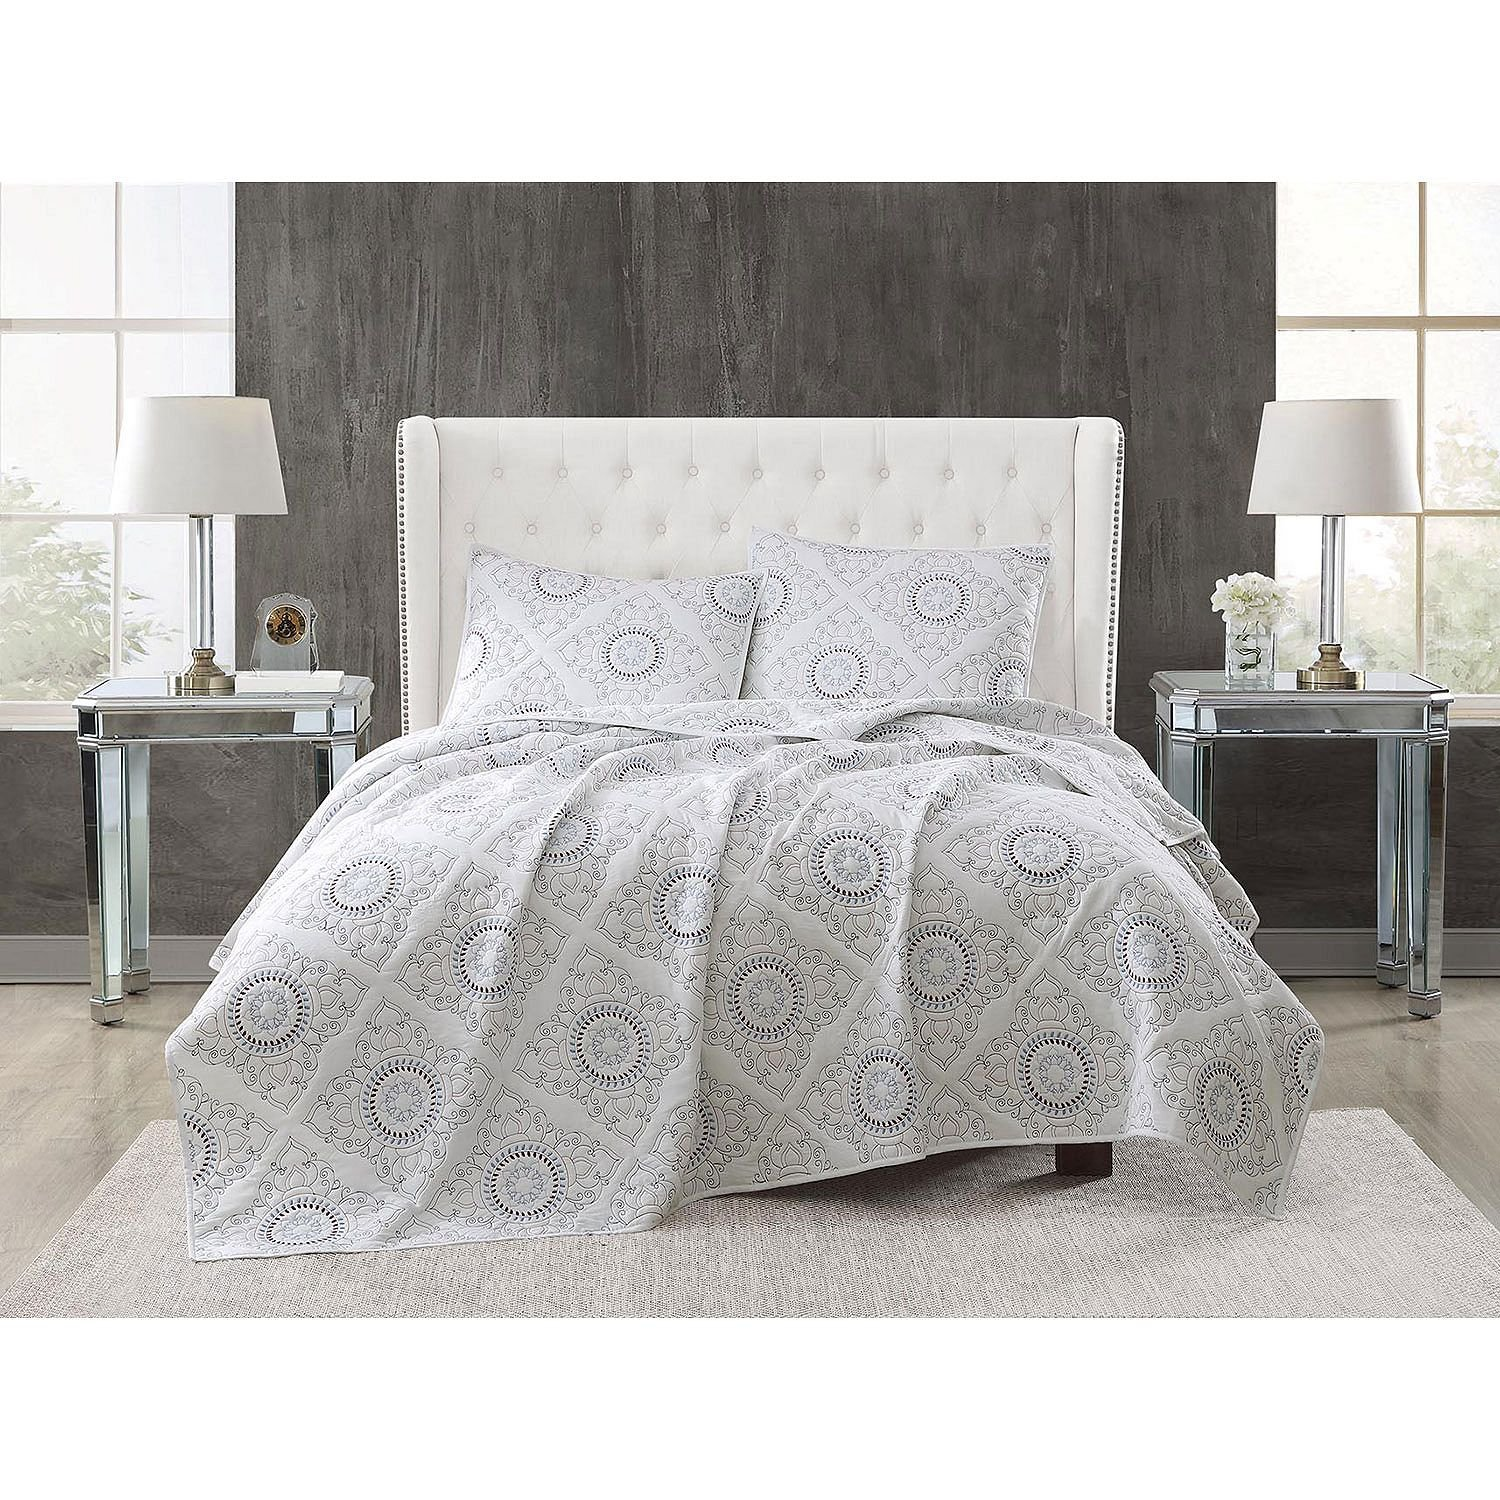 Christian Siriano 3-Piece Embroidered Quilt Set (Full/Queen - White)